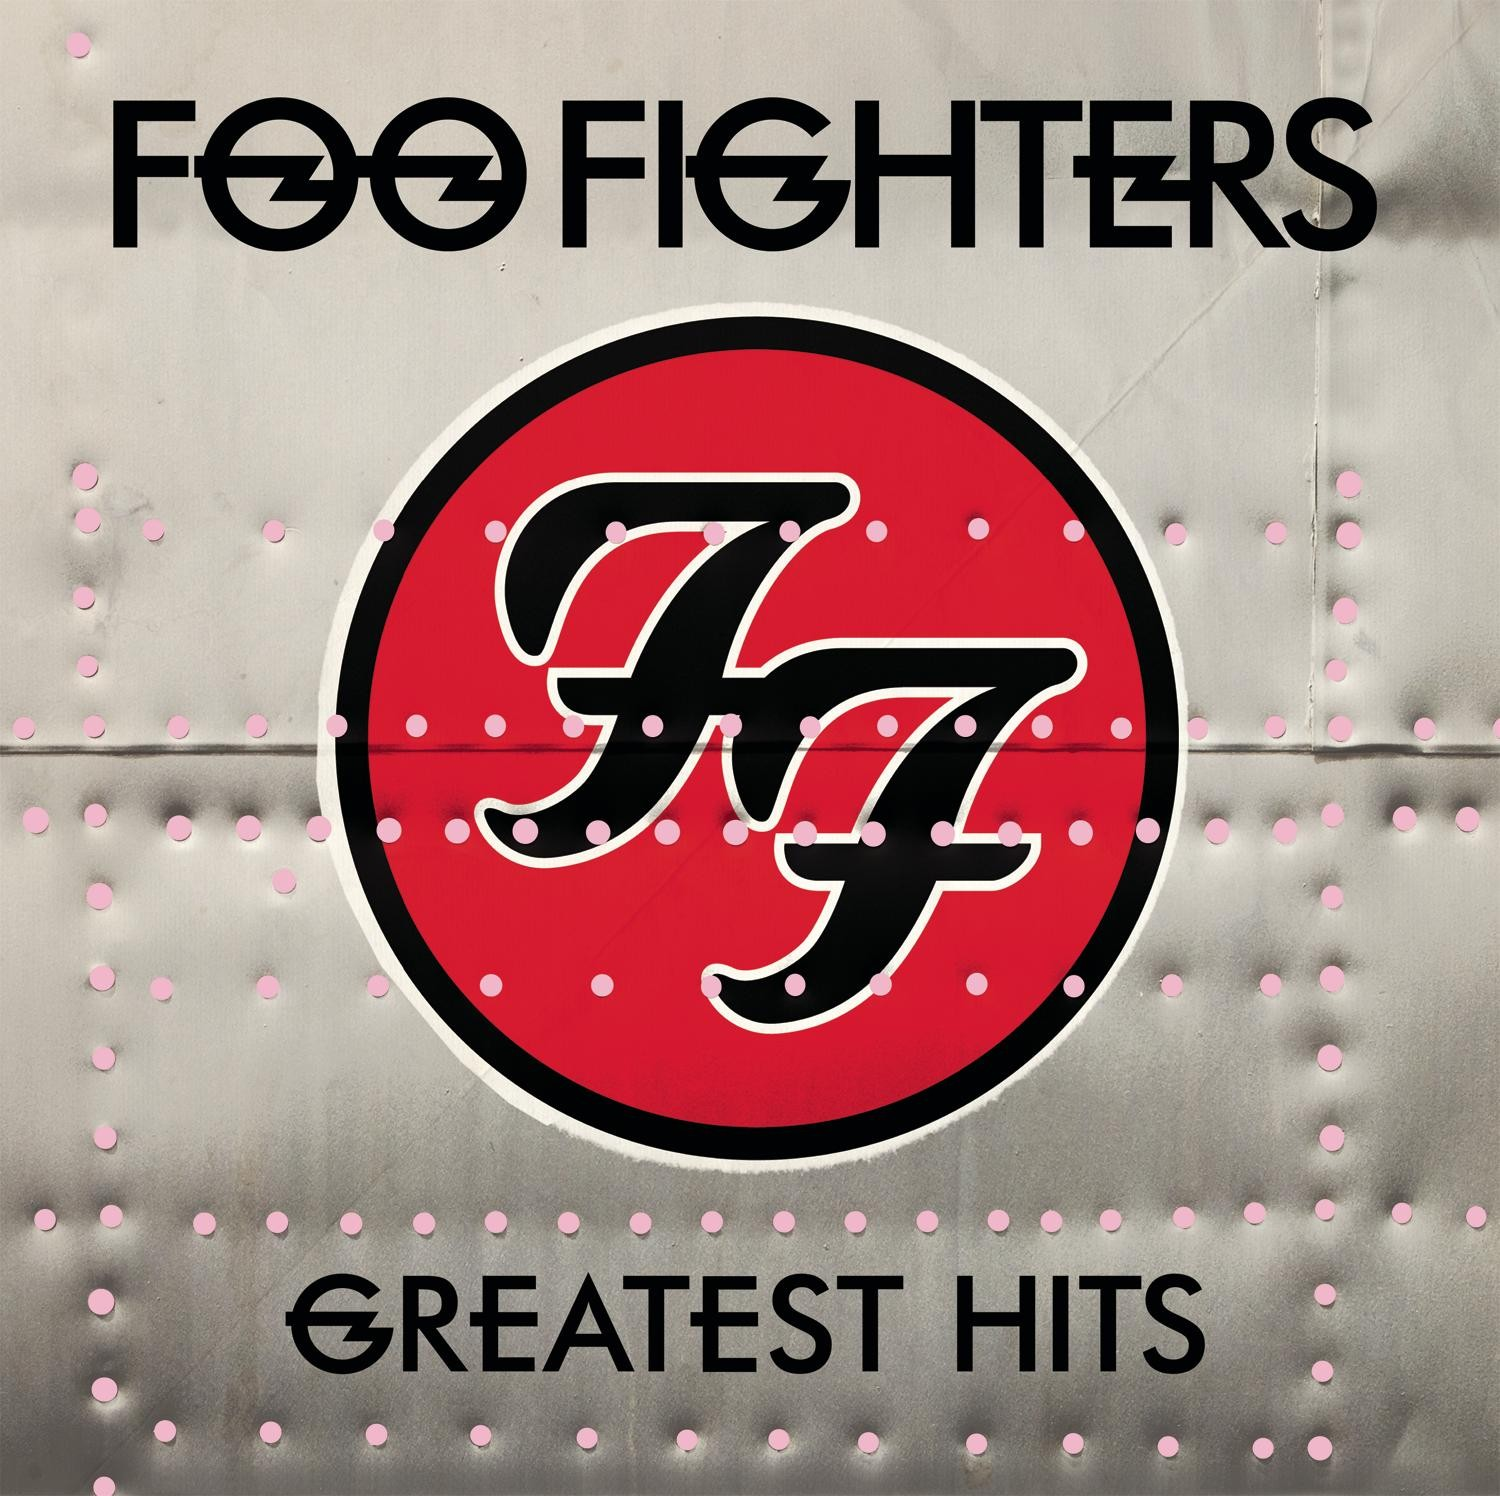 Foo Fighters - Greatest Hits 2XLP